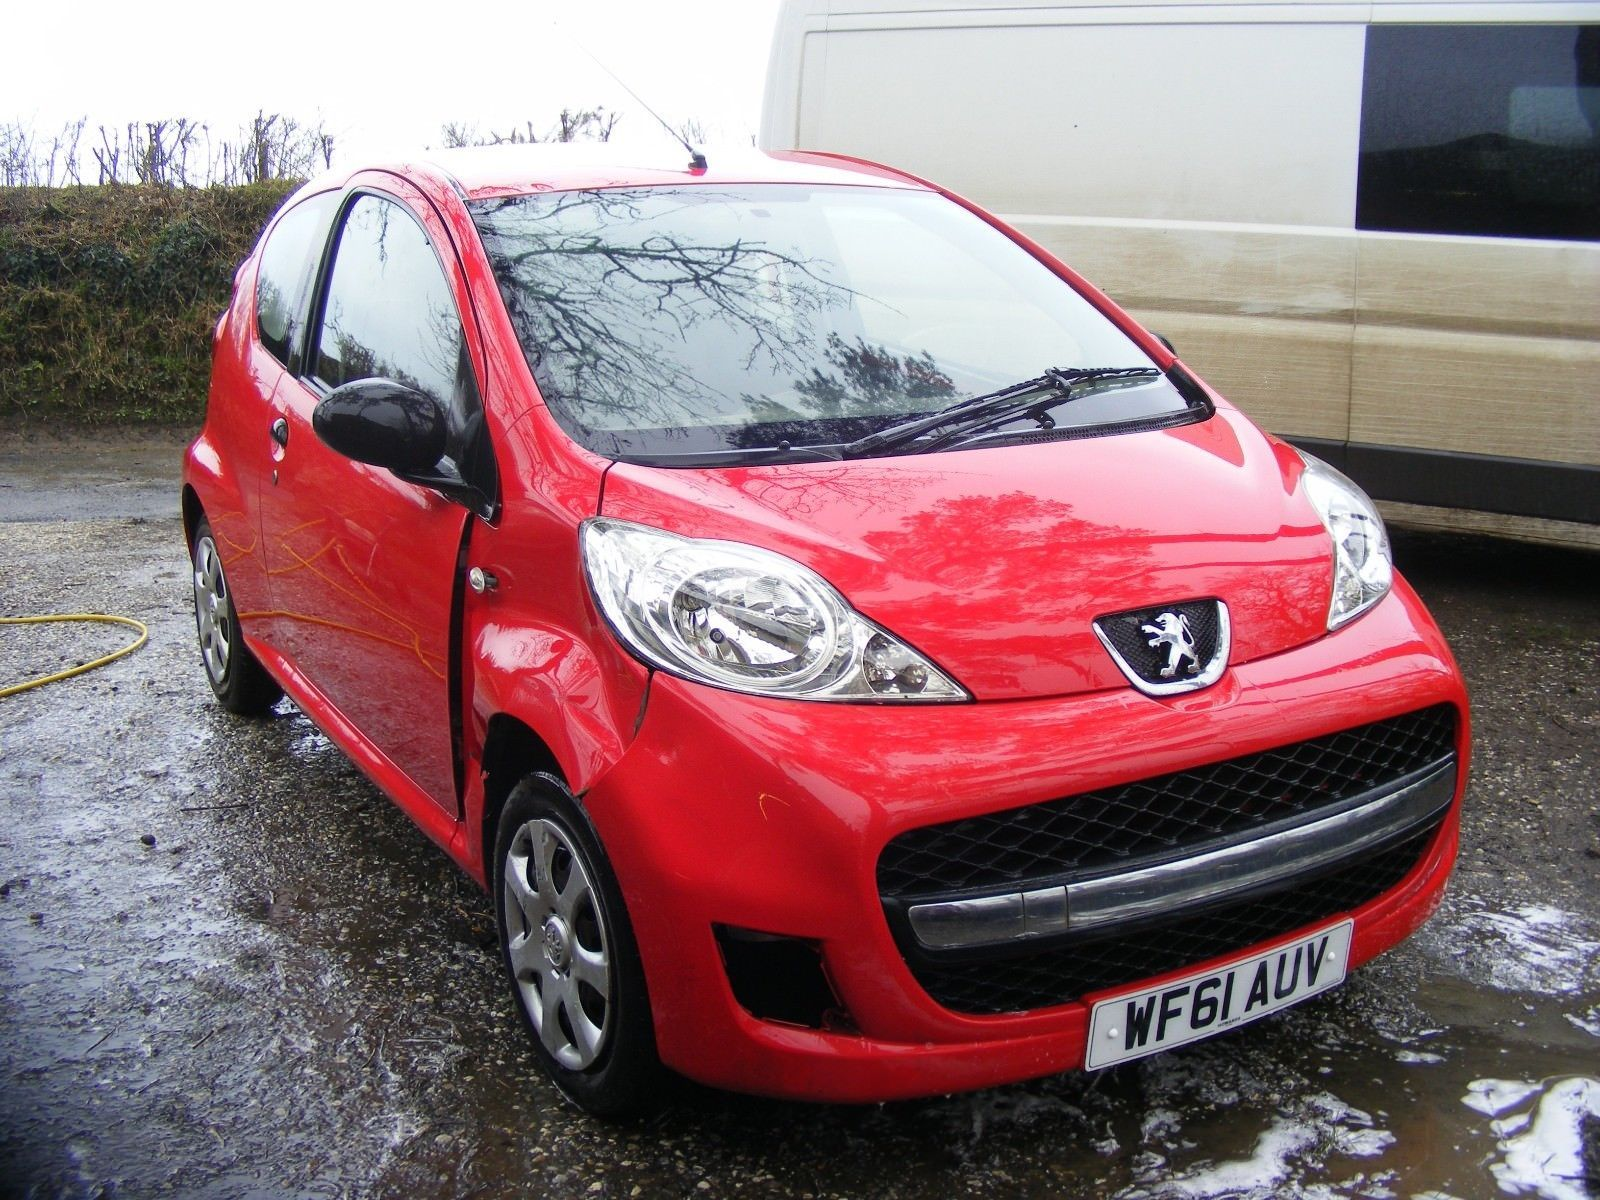 eBay: 2011 PEUGEOT 107 URBAN 3 DOOR SALVAGE DAMAGED REPAIRABLE ...